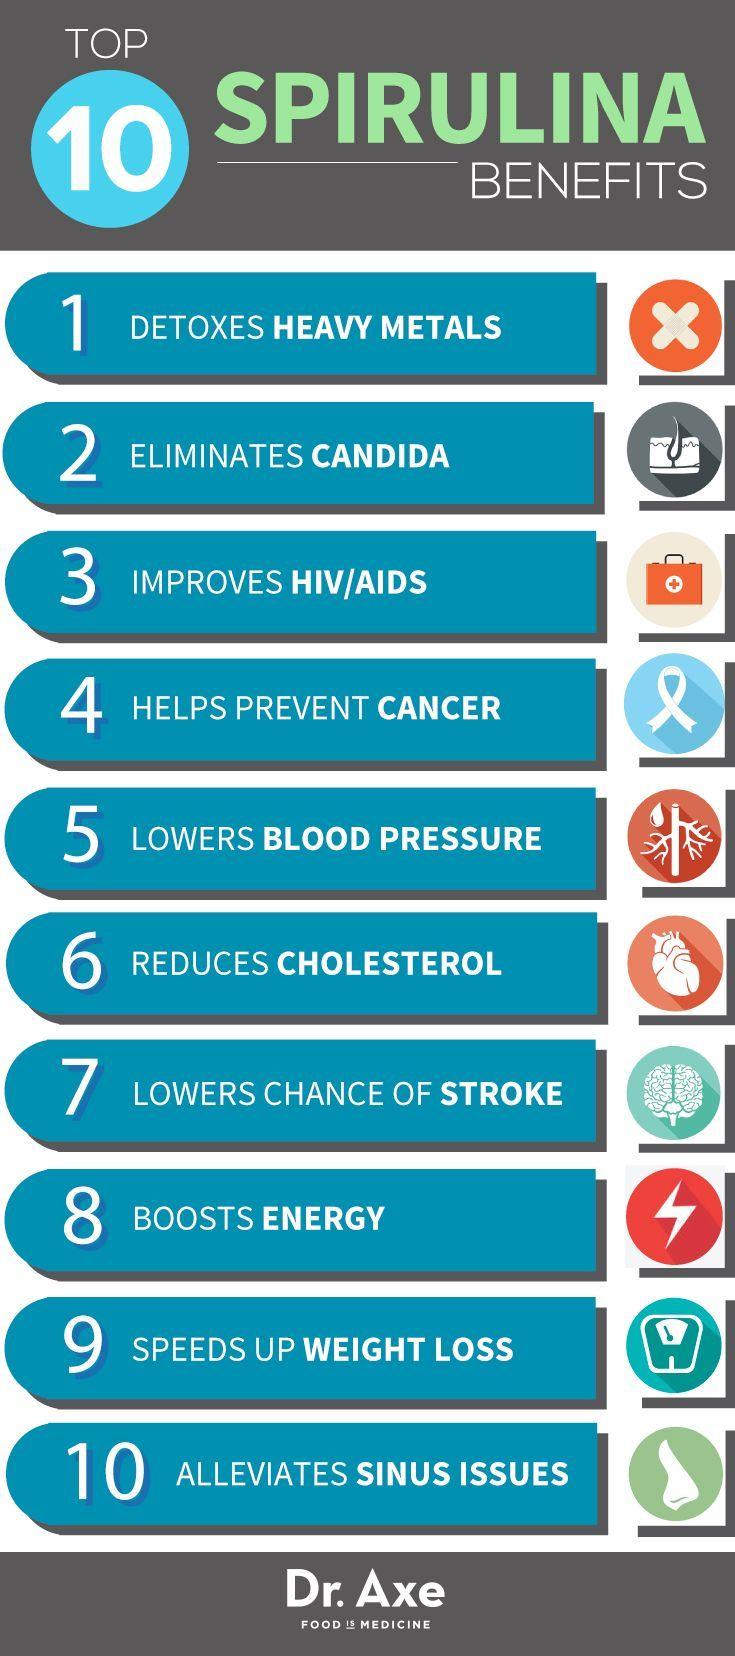 Spirulina Benefits 10 Reasons To Use This Superfood Dr Axe Idnutrition Idlife Https Liveyourbestl Spirulina Benefits Coconut Health Benefits Spirulina